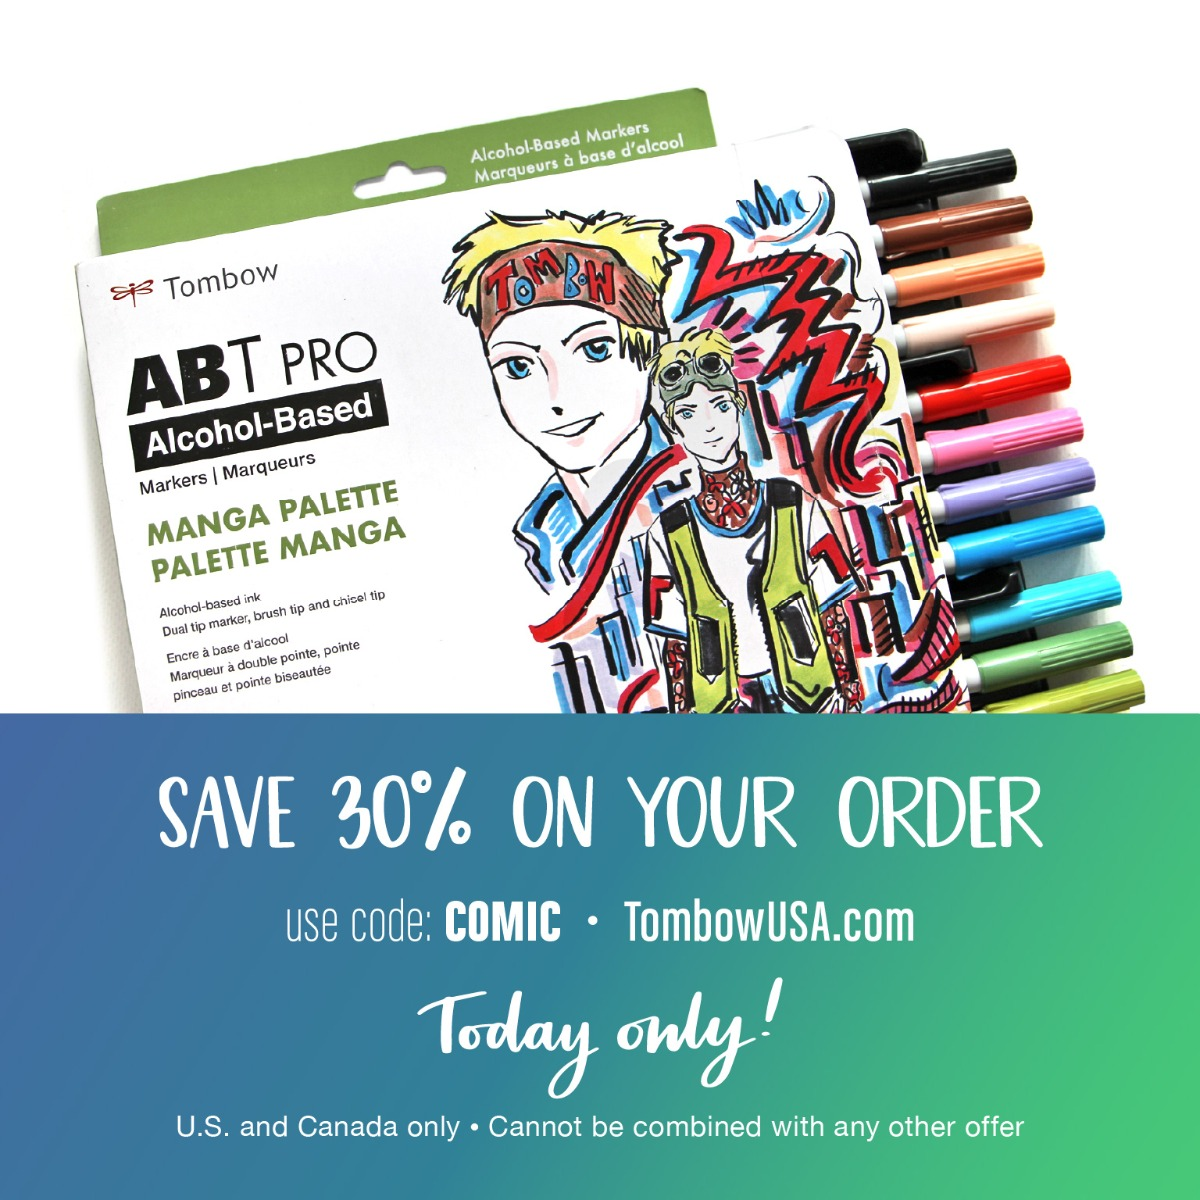 Save 30% on all Tombow items today only with code COMIC at checkout. Cannot be combined with any other offer. United States and Canada only.